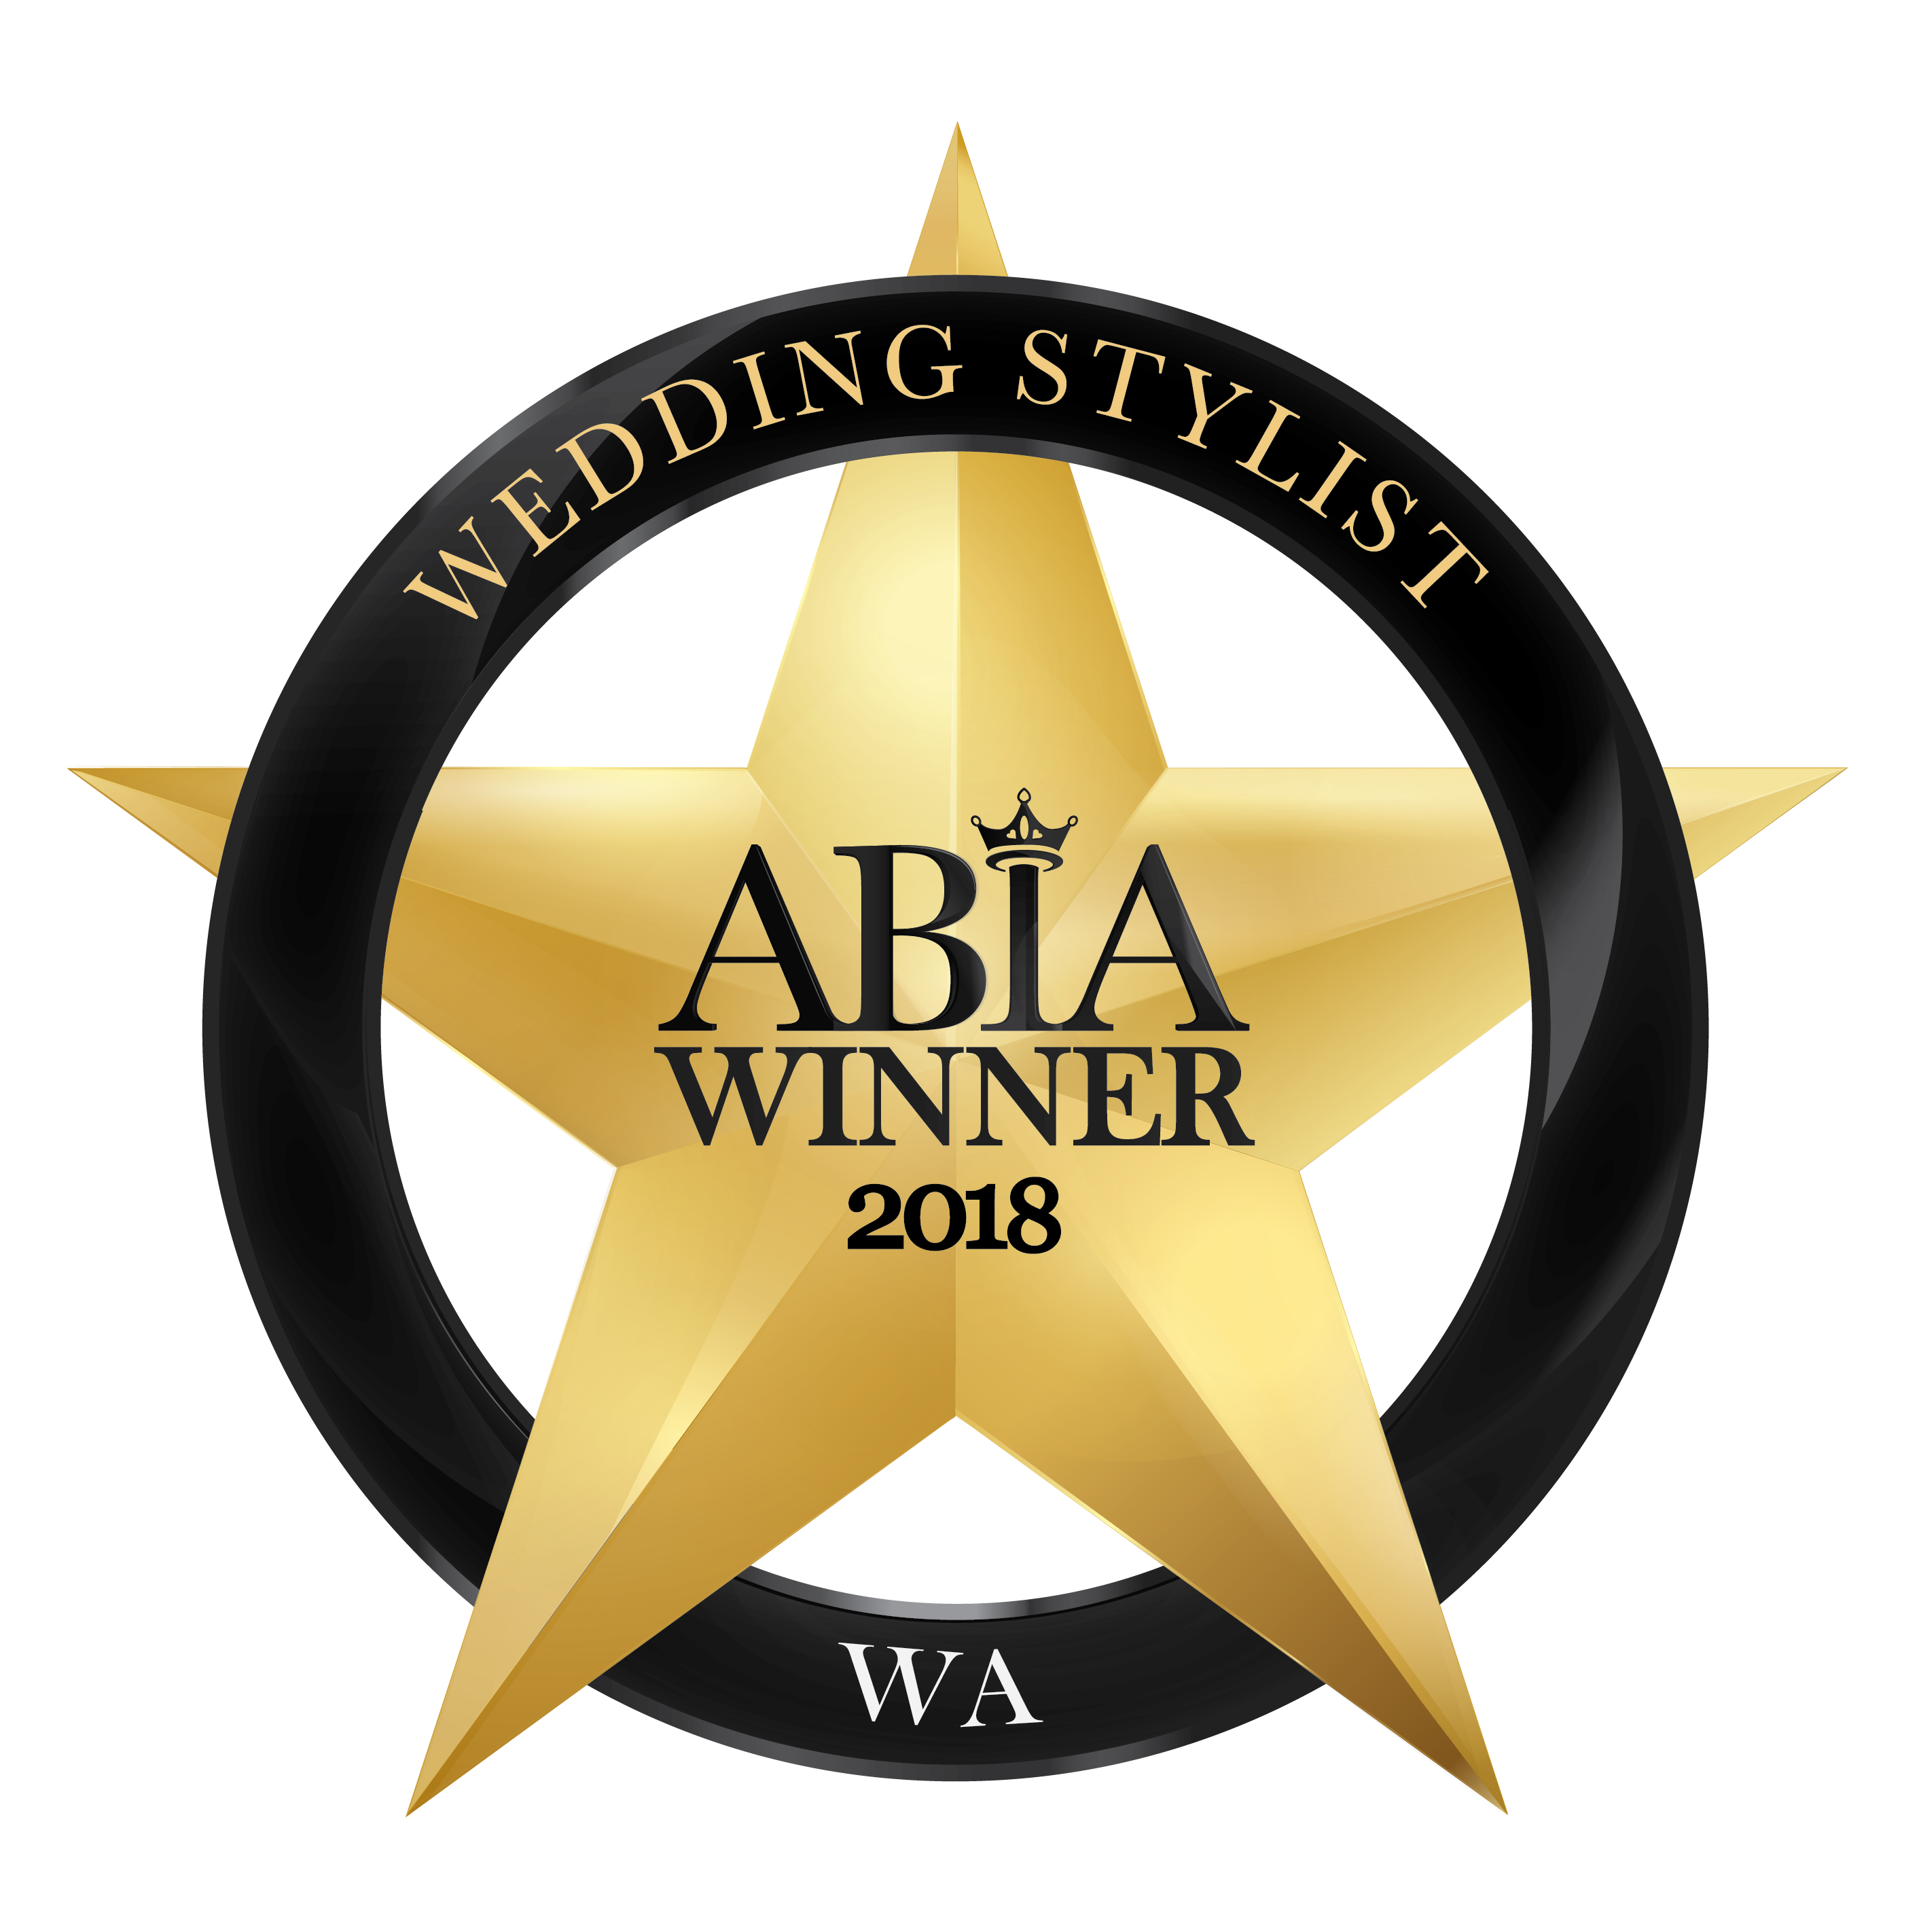 ABIA-Award-Promo-Logo-WA-2018-Wedding-Stylist_WINNER